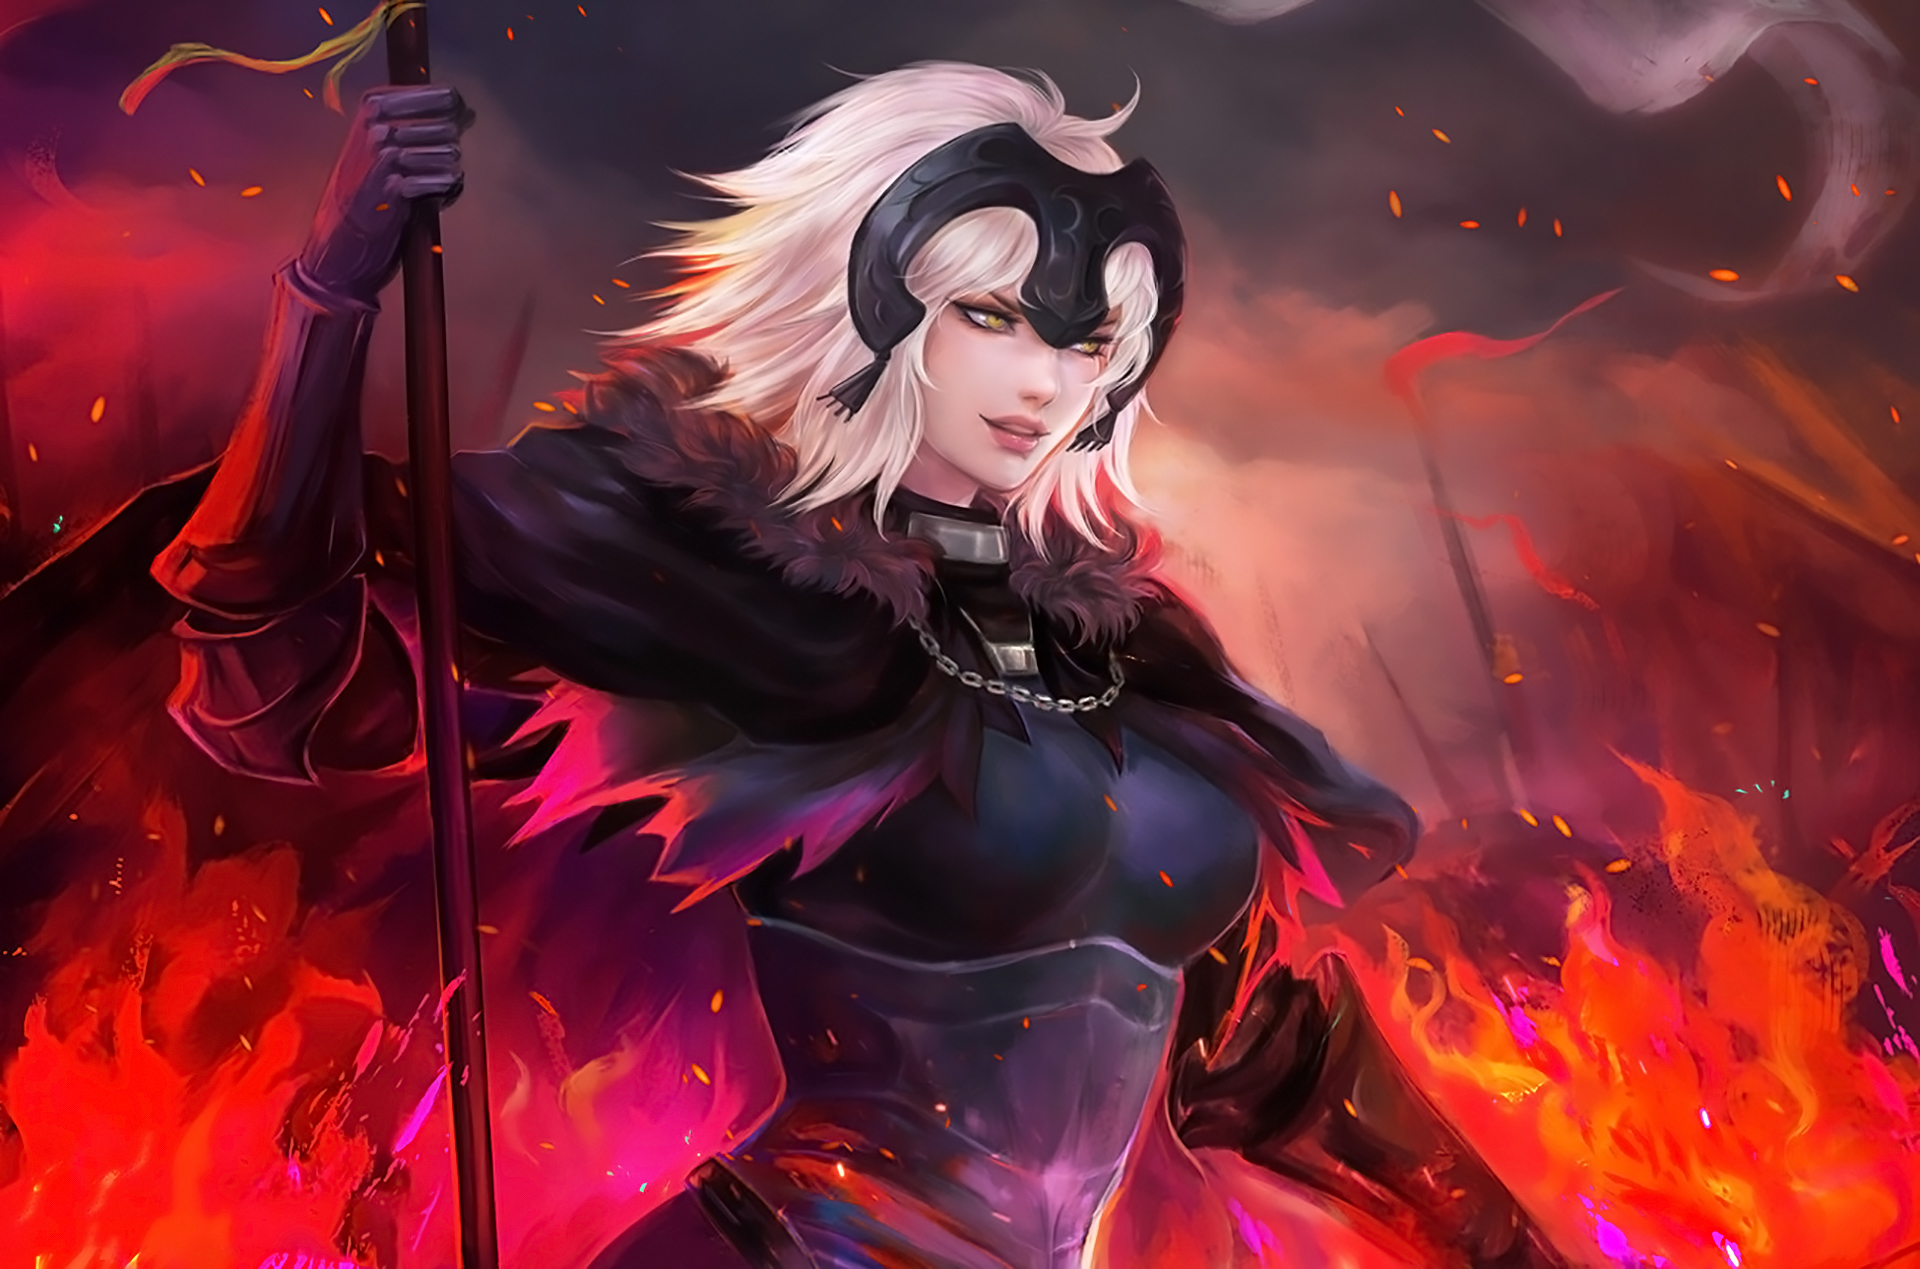 Jeanne Alter Anime Fate Grand Order Hd Animals 4k Wallpapers Images Backgrounds Photos And Pictures